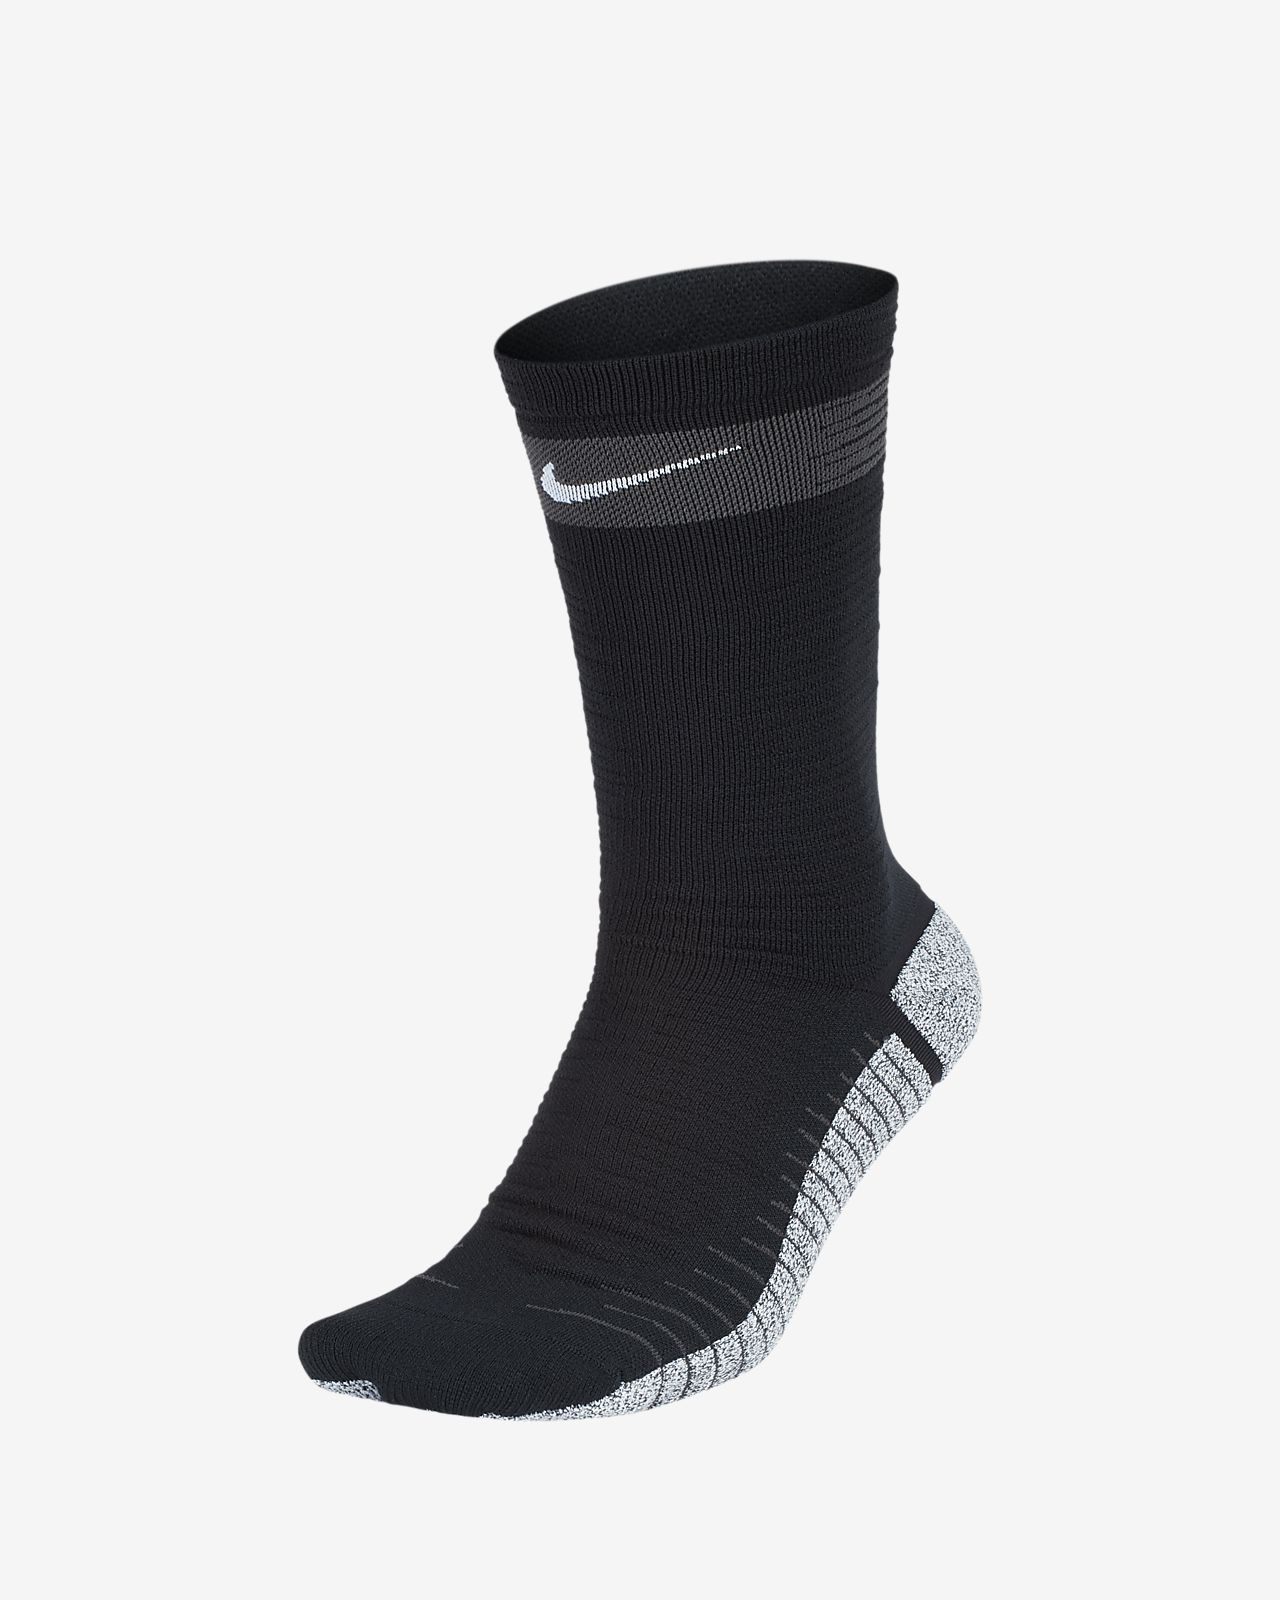 NikeGrip Strike Light Crew Calcetines de fútbol